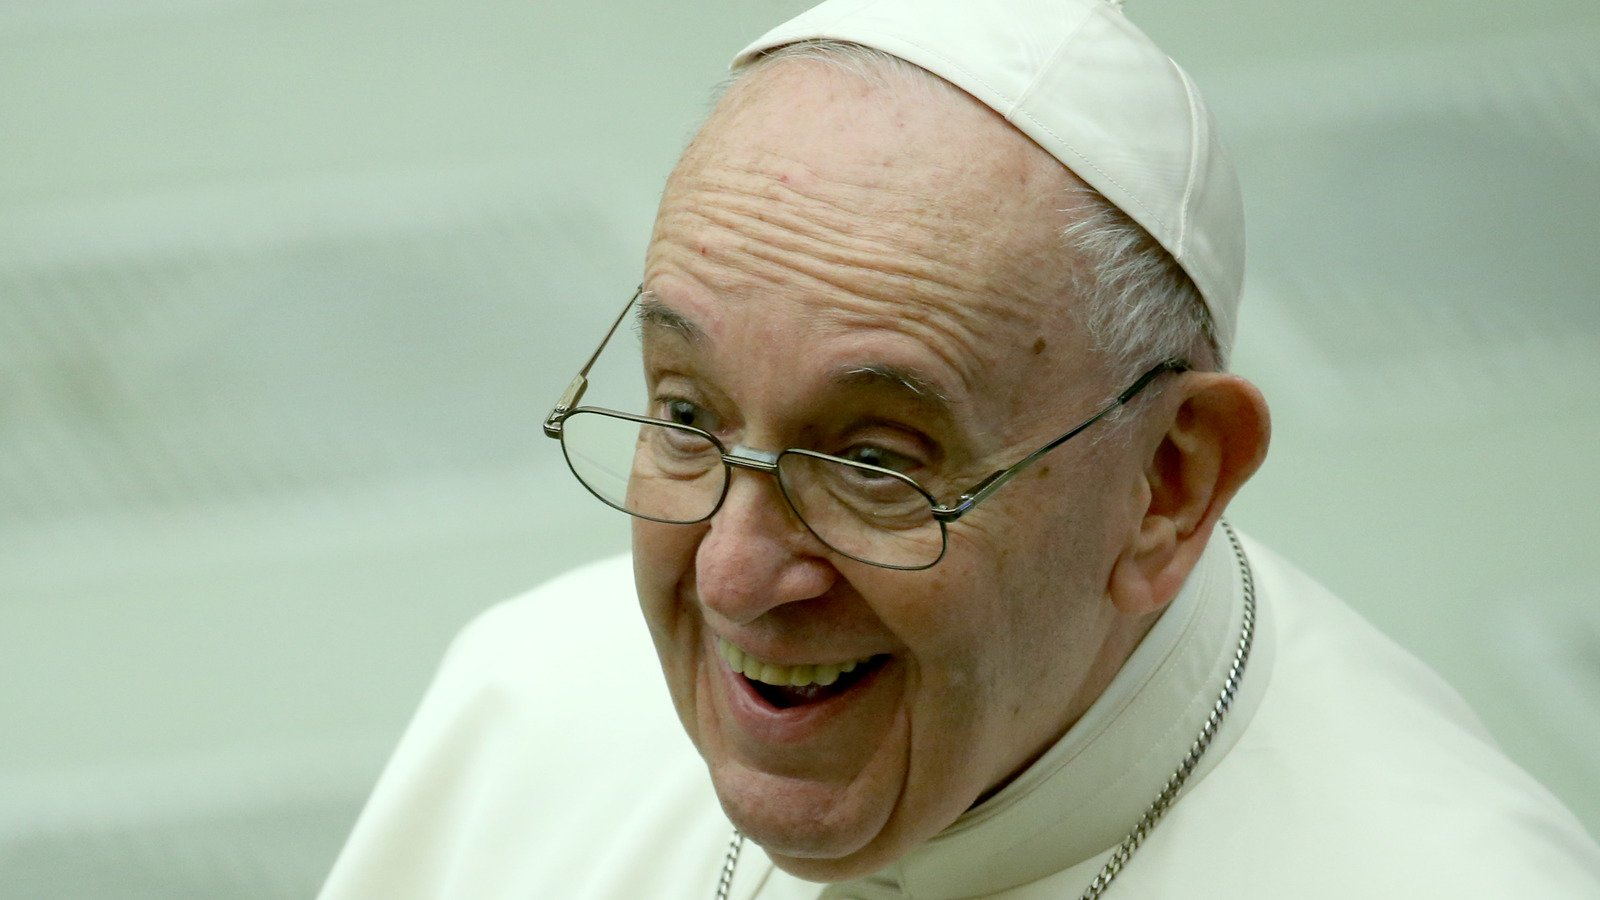 The Truth About The Time Pope Francis Worked As A Bouncer